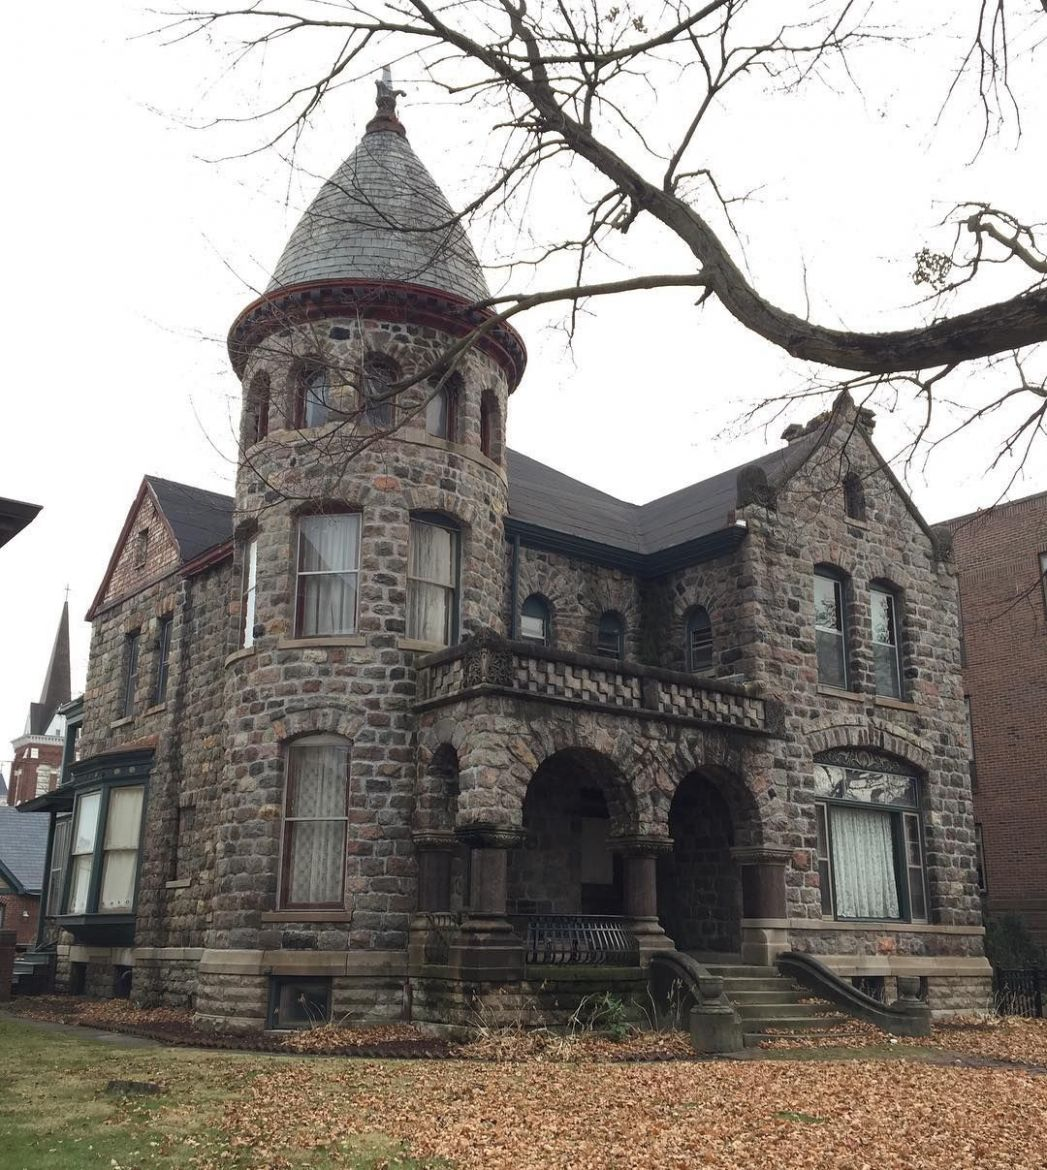 Fort Wayne (Indiana) (With images) | Gothic house, Old stone houses